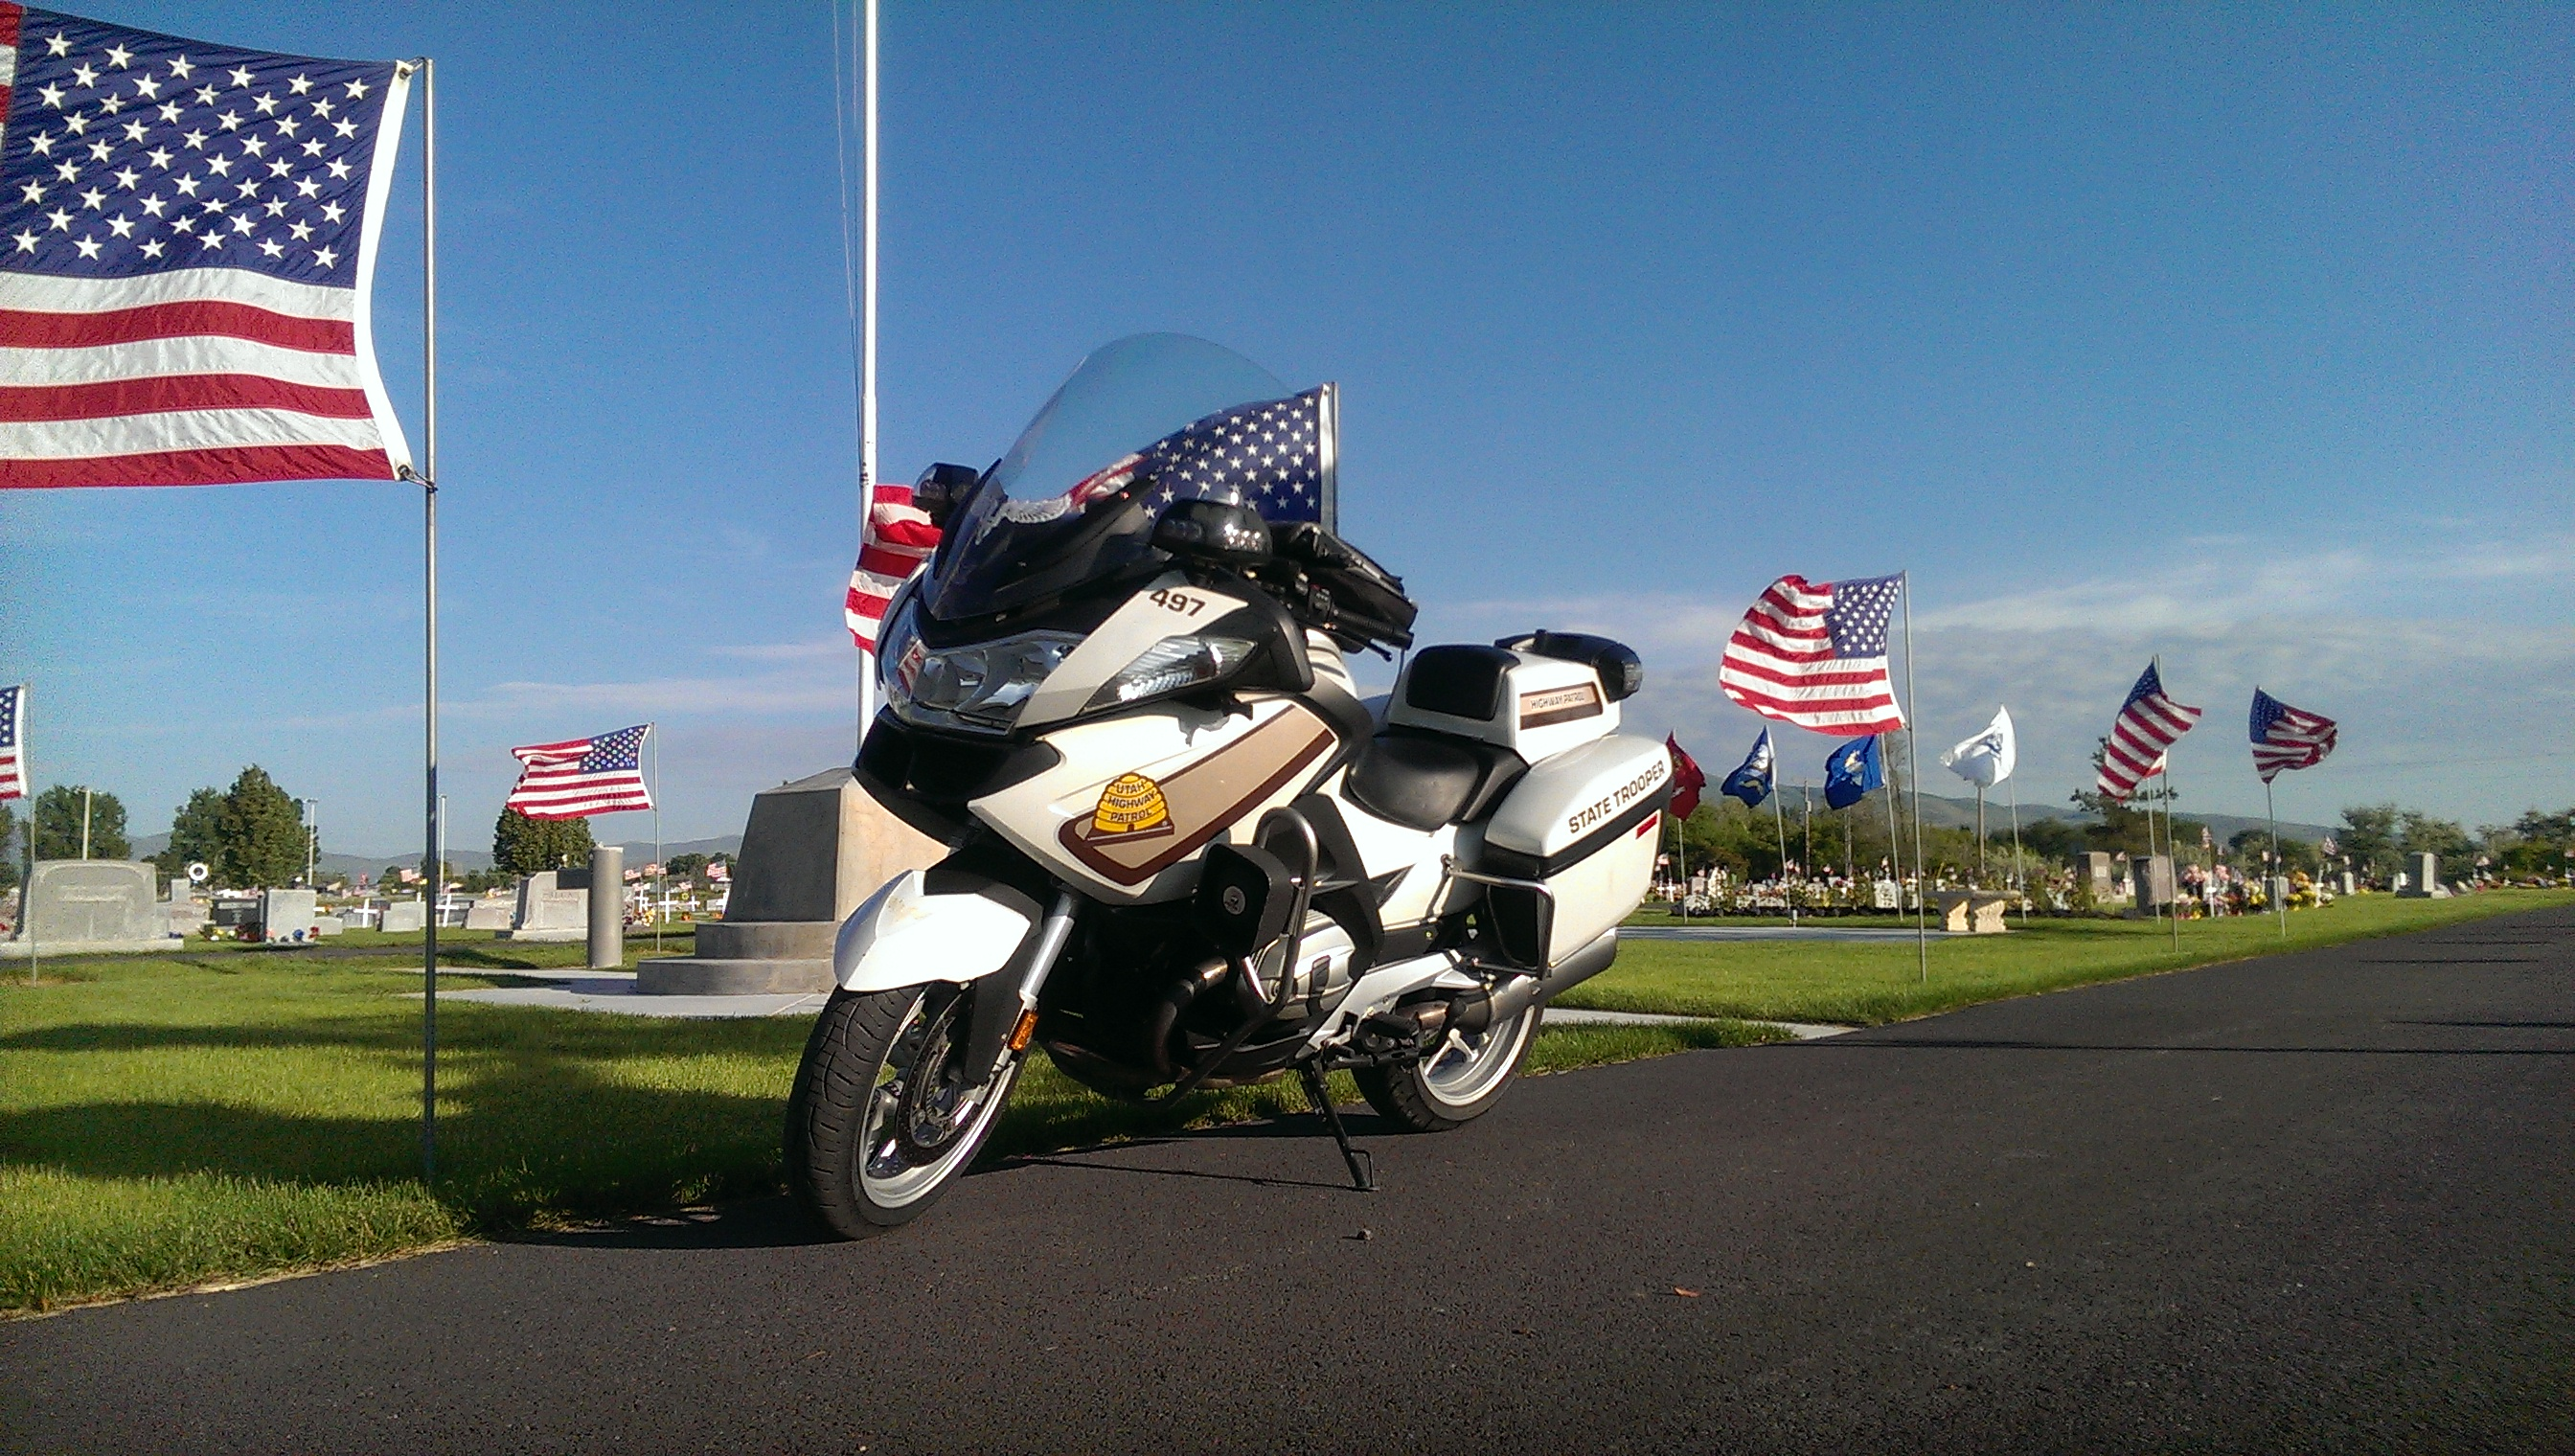 UHP motorcycle parked near flags on Memorial Day 2016